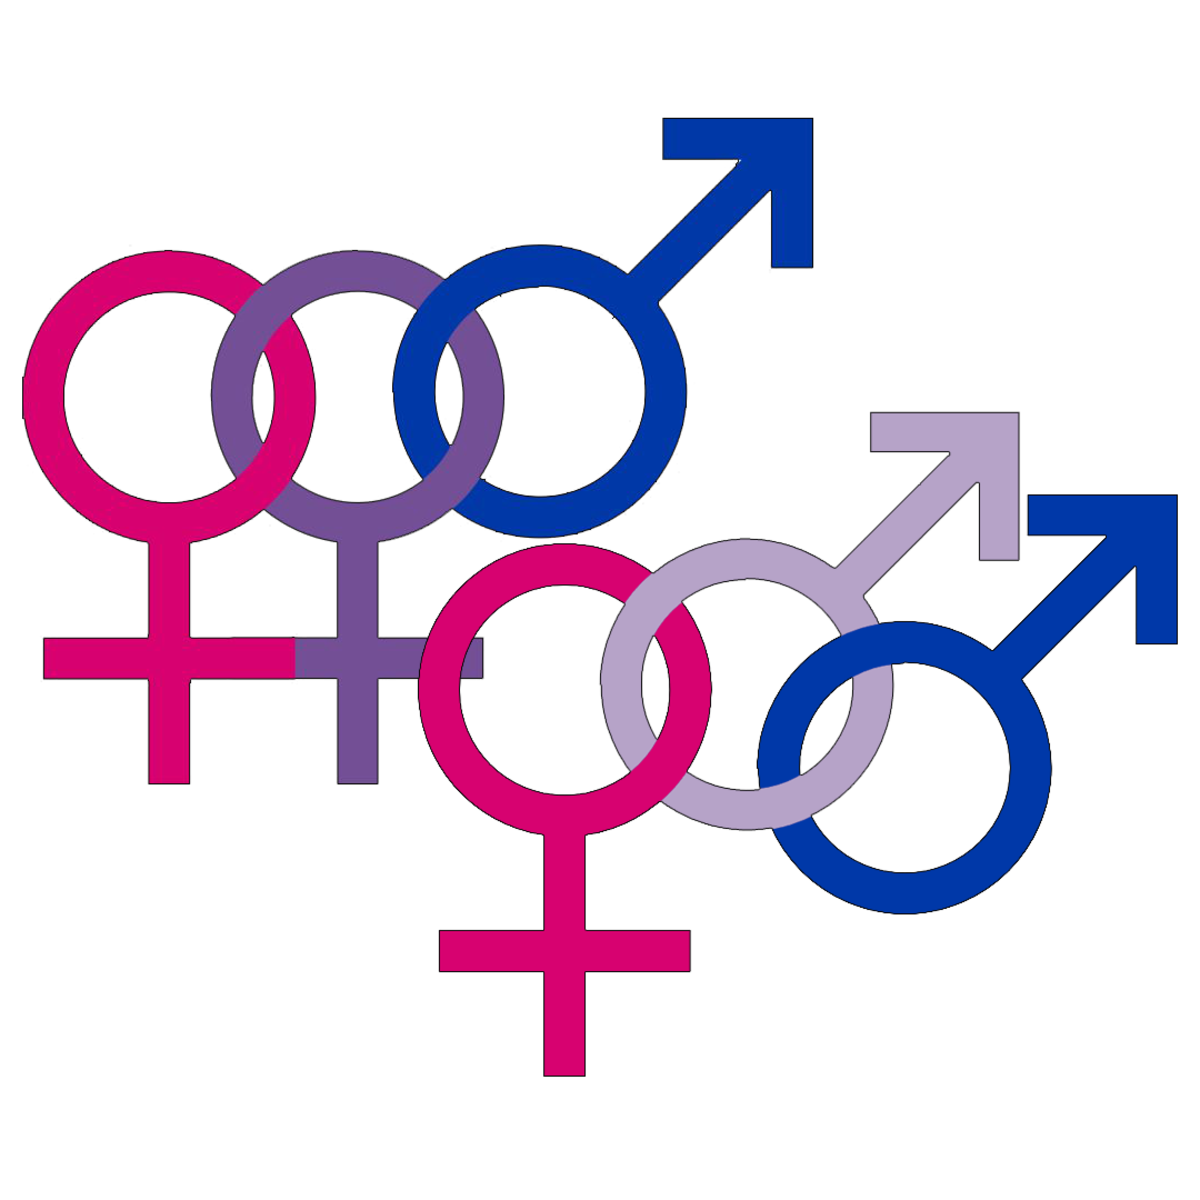 The male and female symbols can be combined to create a symbol of bi pride.